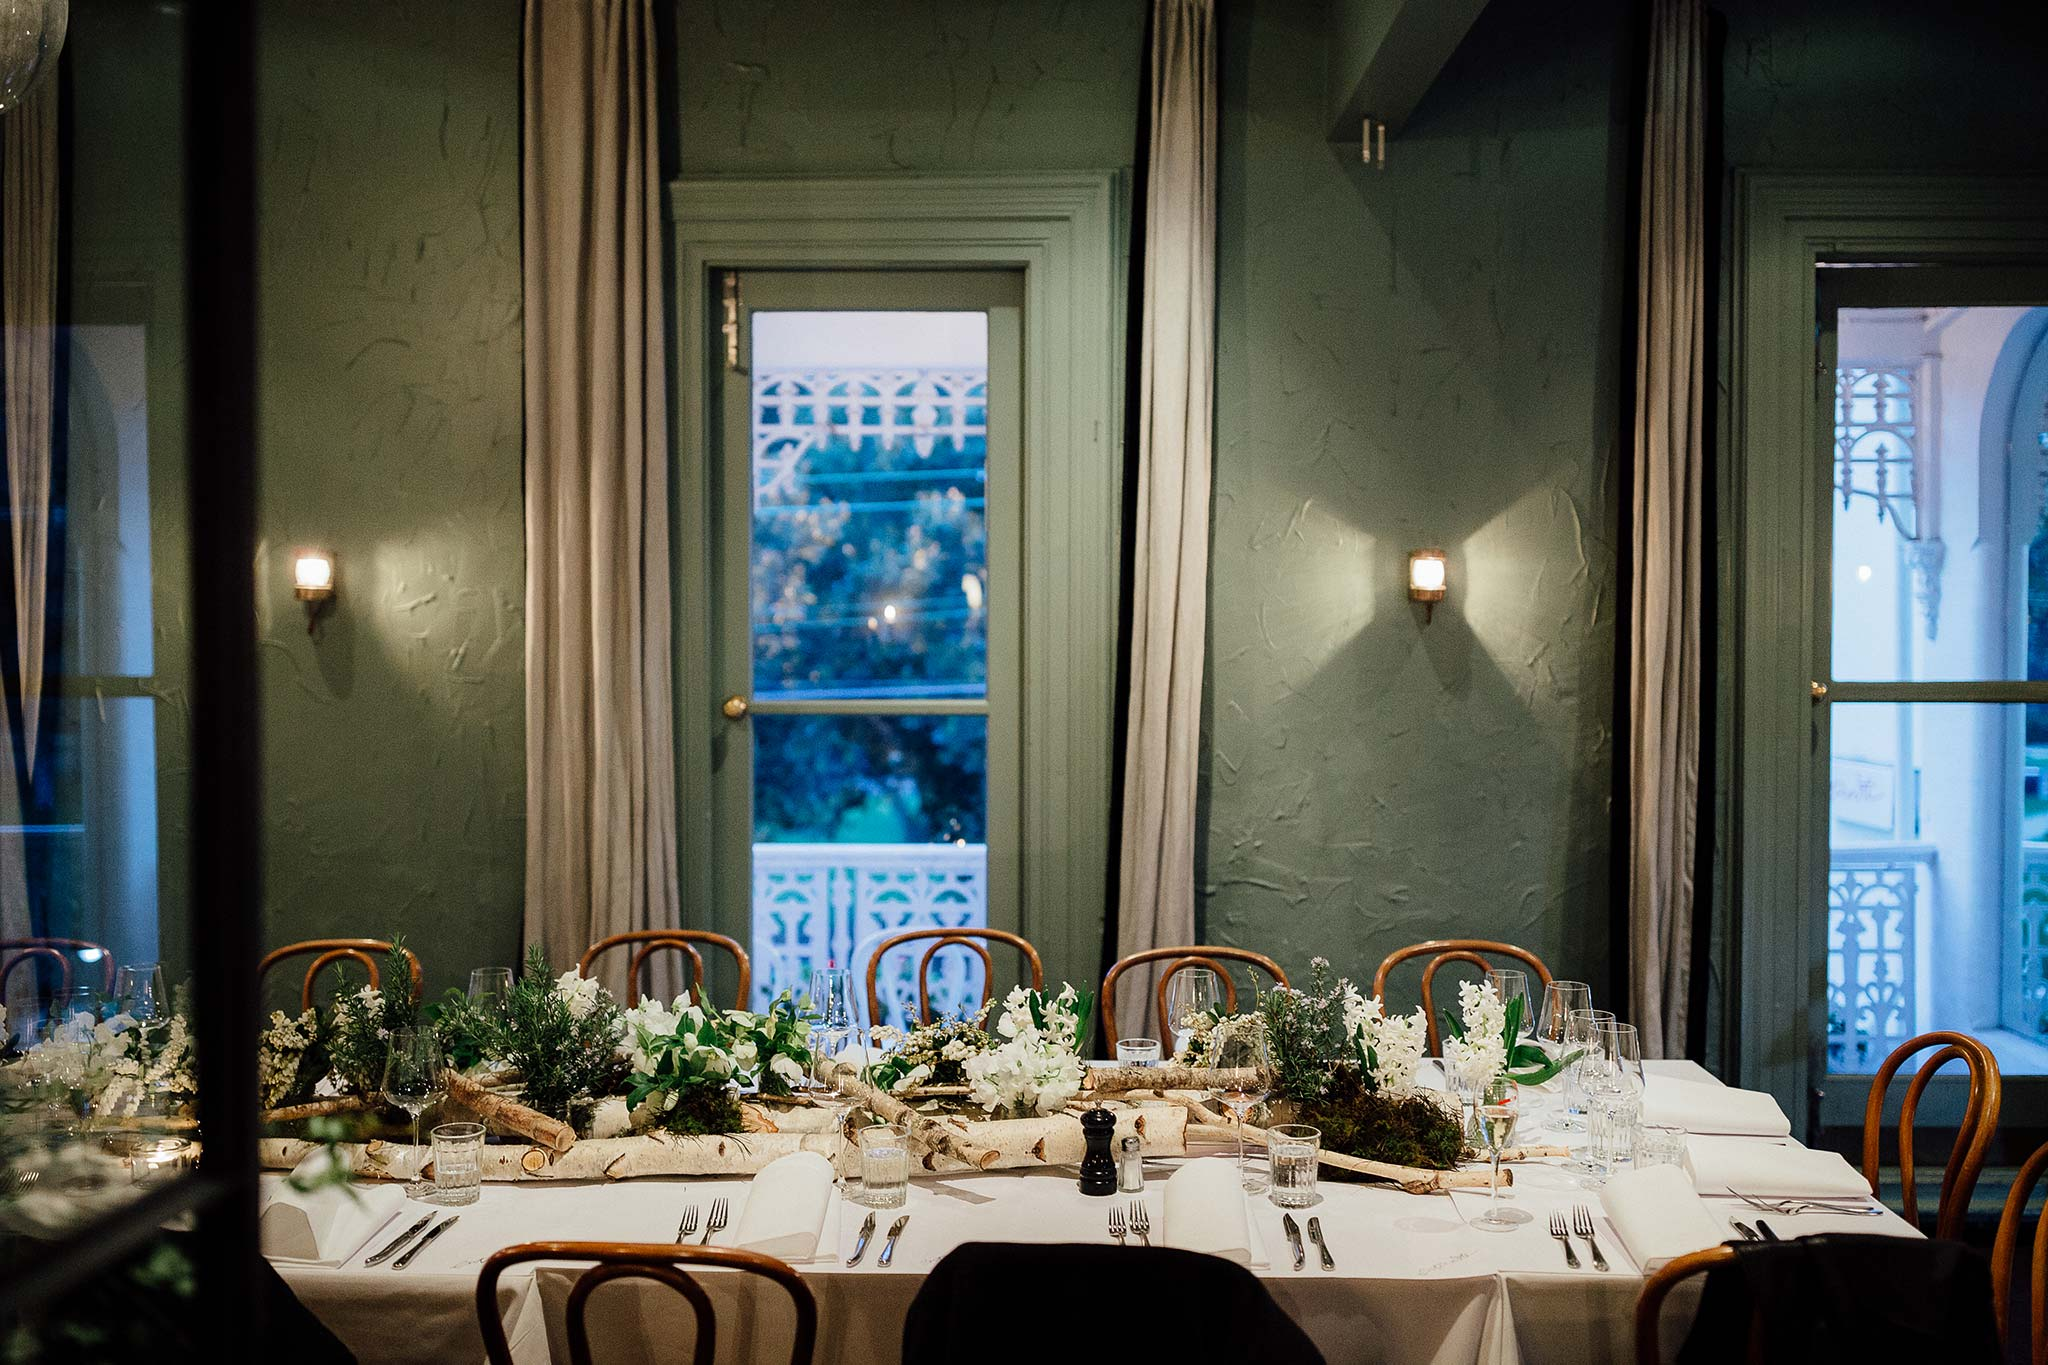 melbourne-entrecote-wedding-reception-private-room-decoration